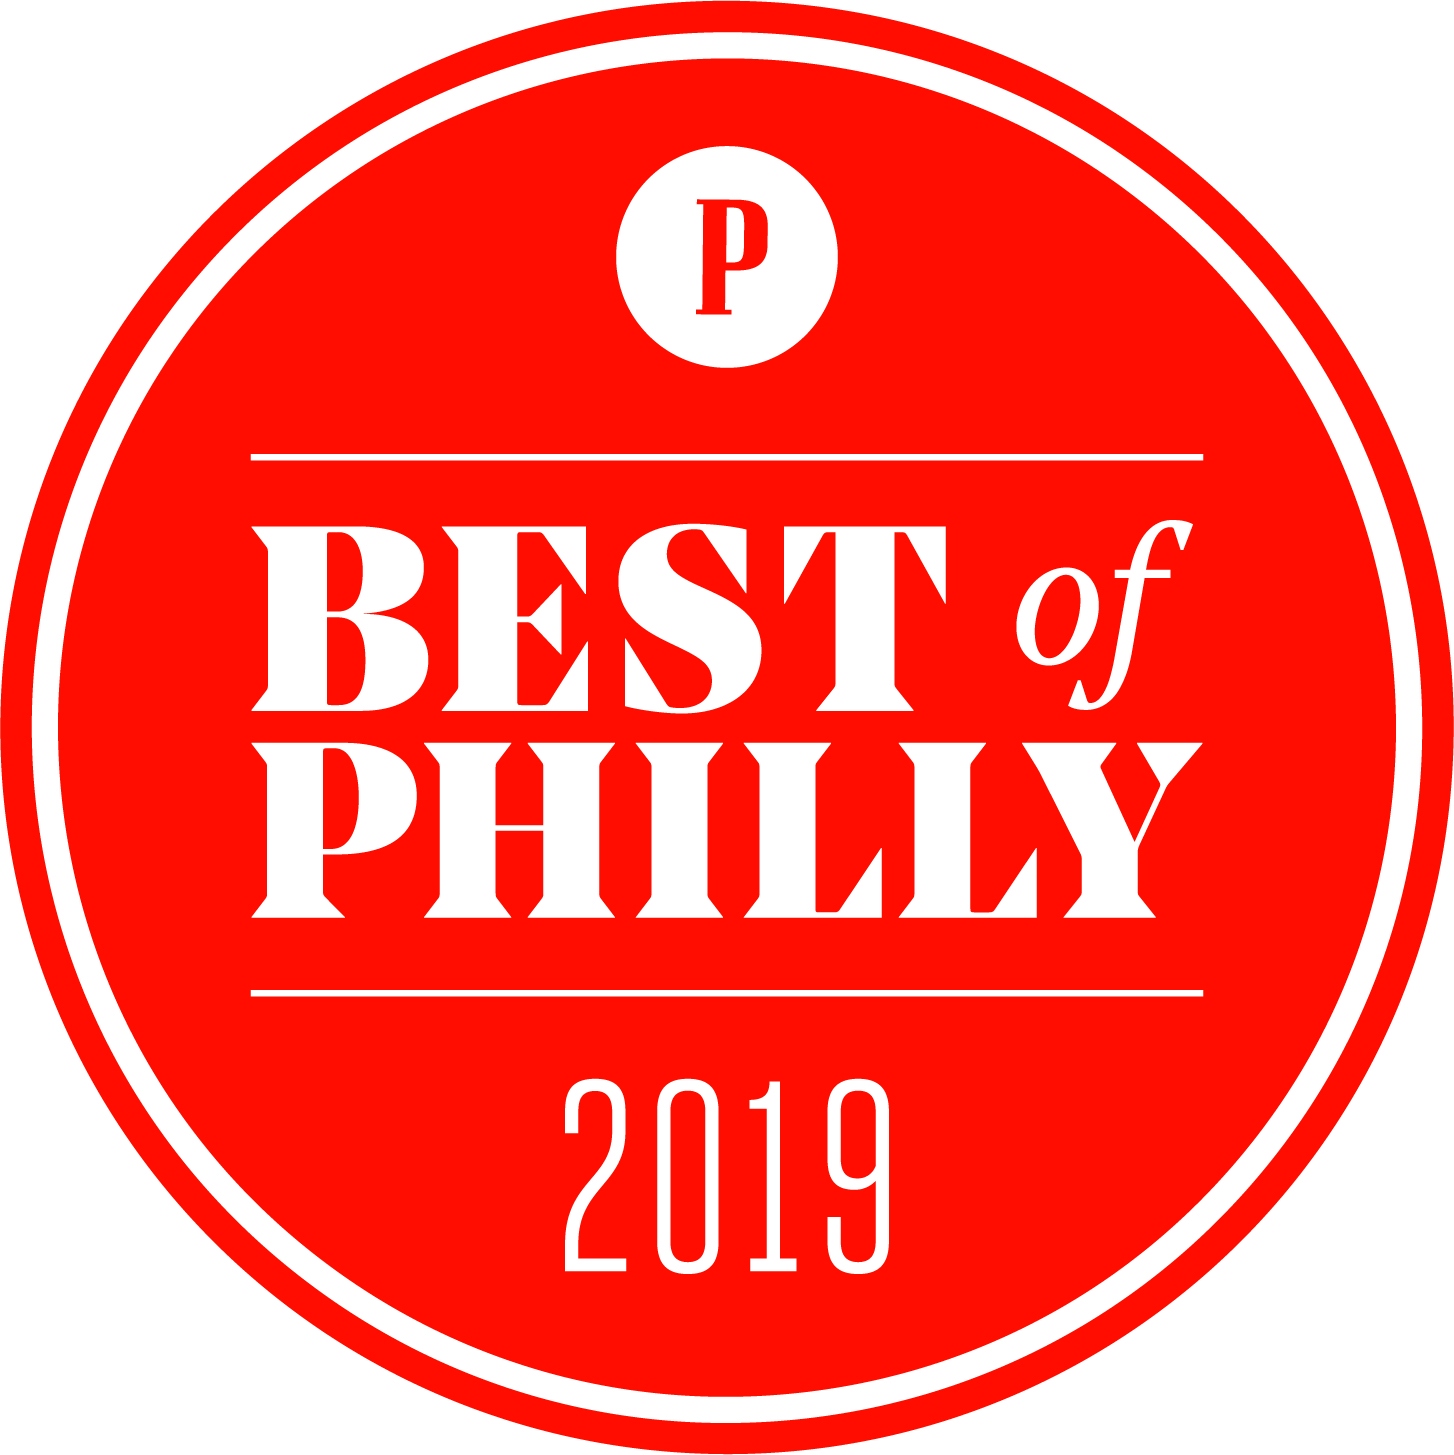 I won a Best of Philly award for my family photography work! - As someone who never wins anything, I still can't believe it. I couldn't have won this award without having folks to photograph, so thank you so much for allowing me to do that and trusting me to capture your memories.Also, check out this article I was interviewed for on How to Take Non-Cheesy Family Photos.